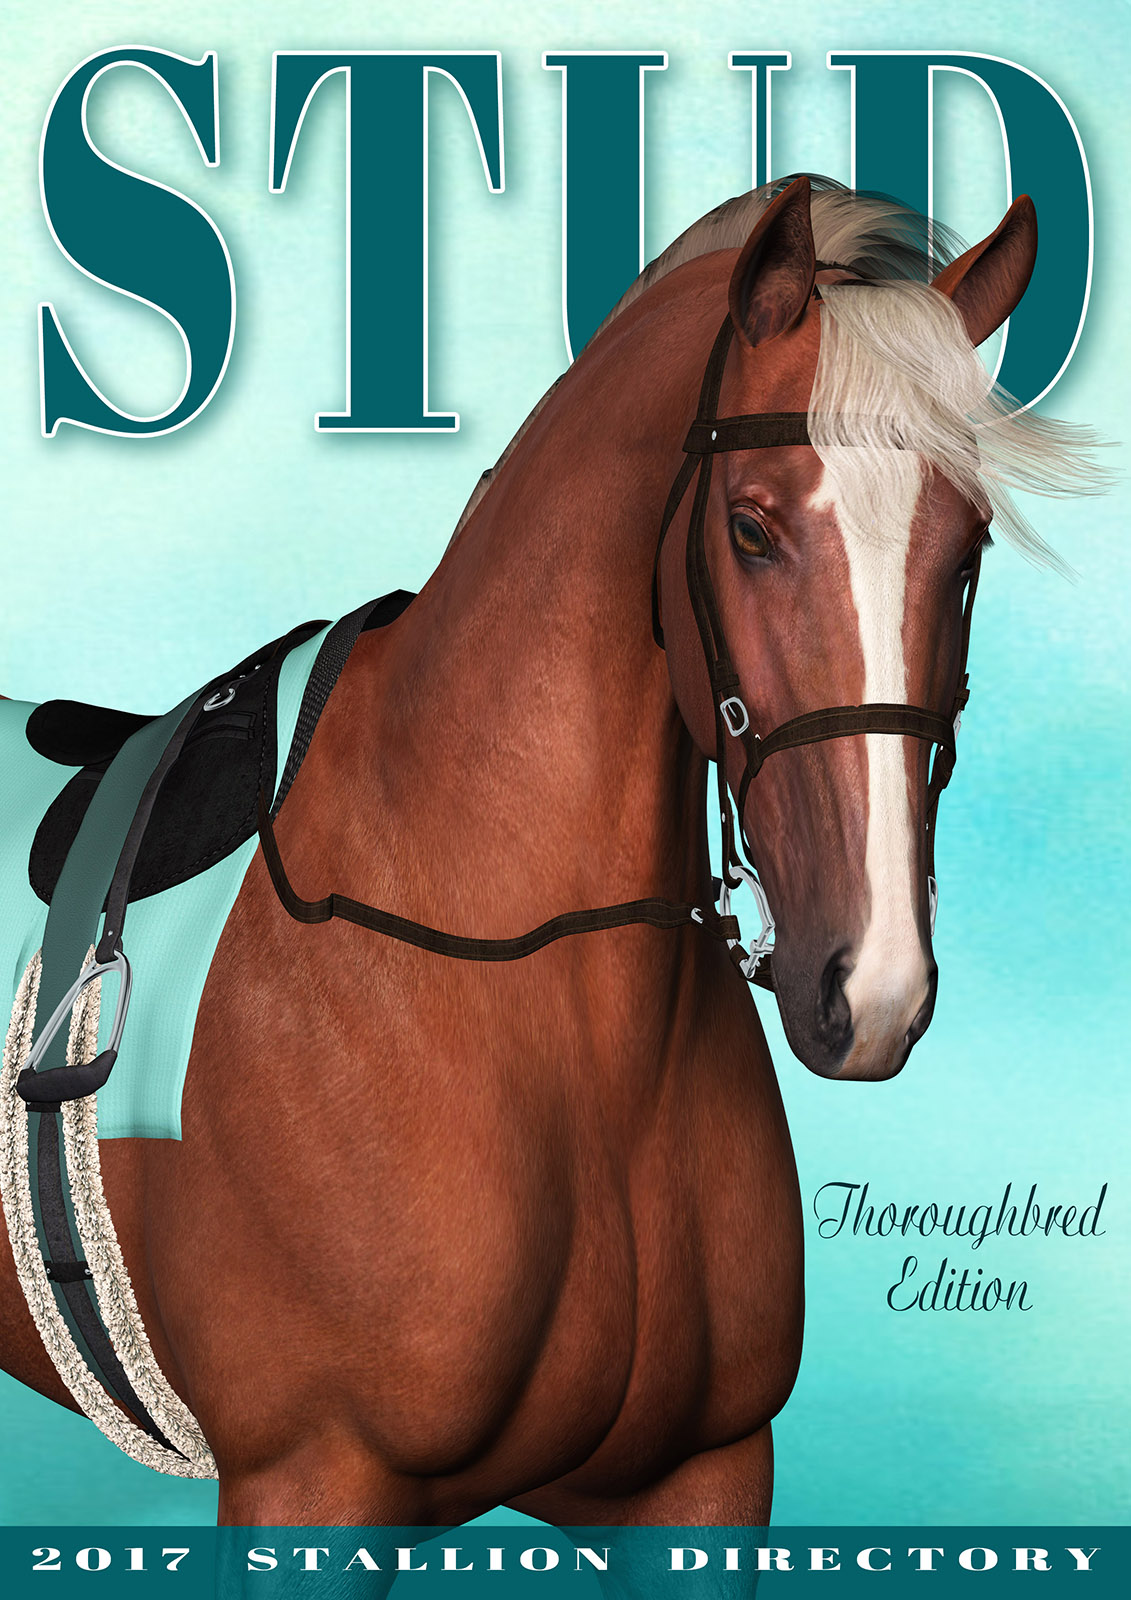 Magazine Cover - Stallion Directory - Thoroughbred Edition